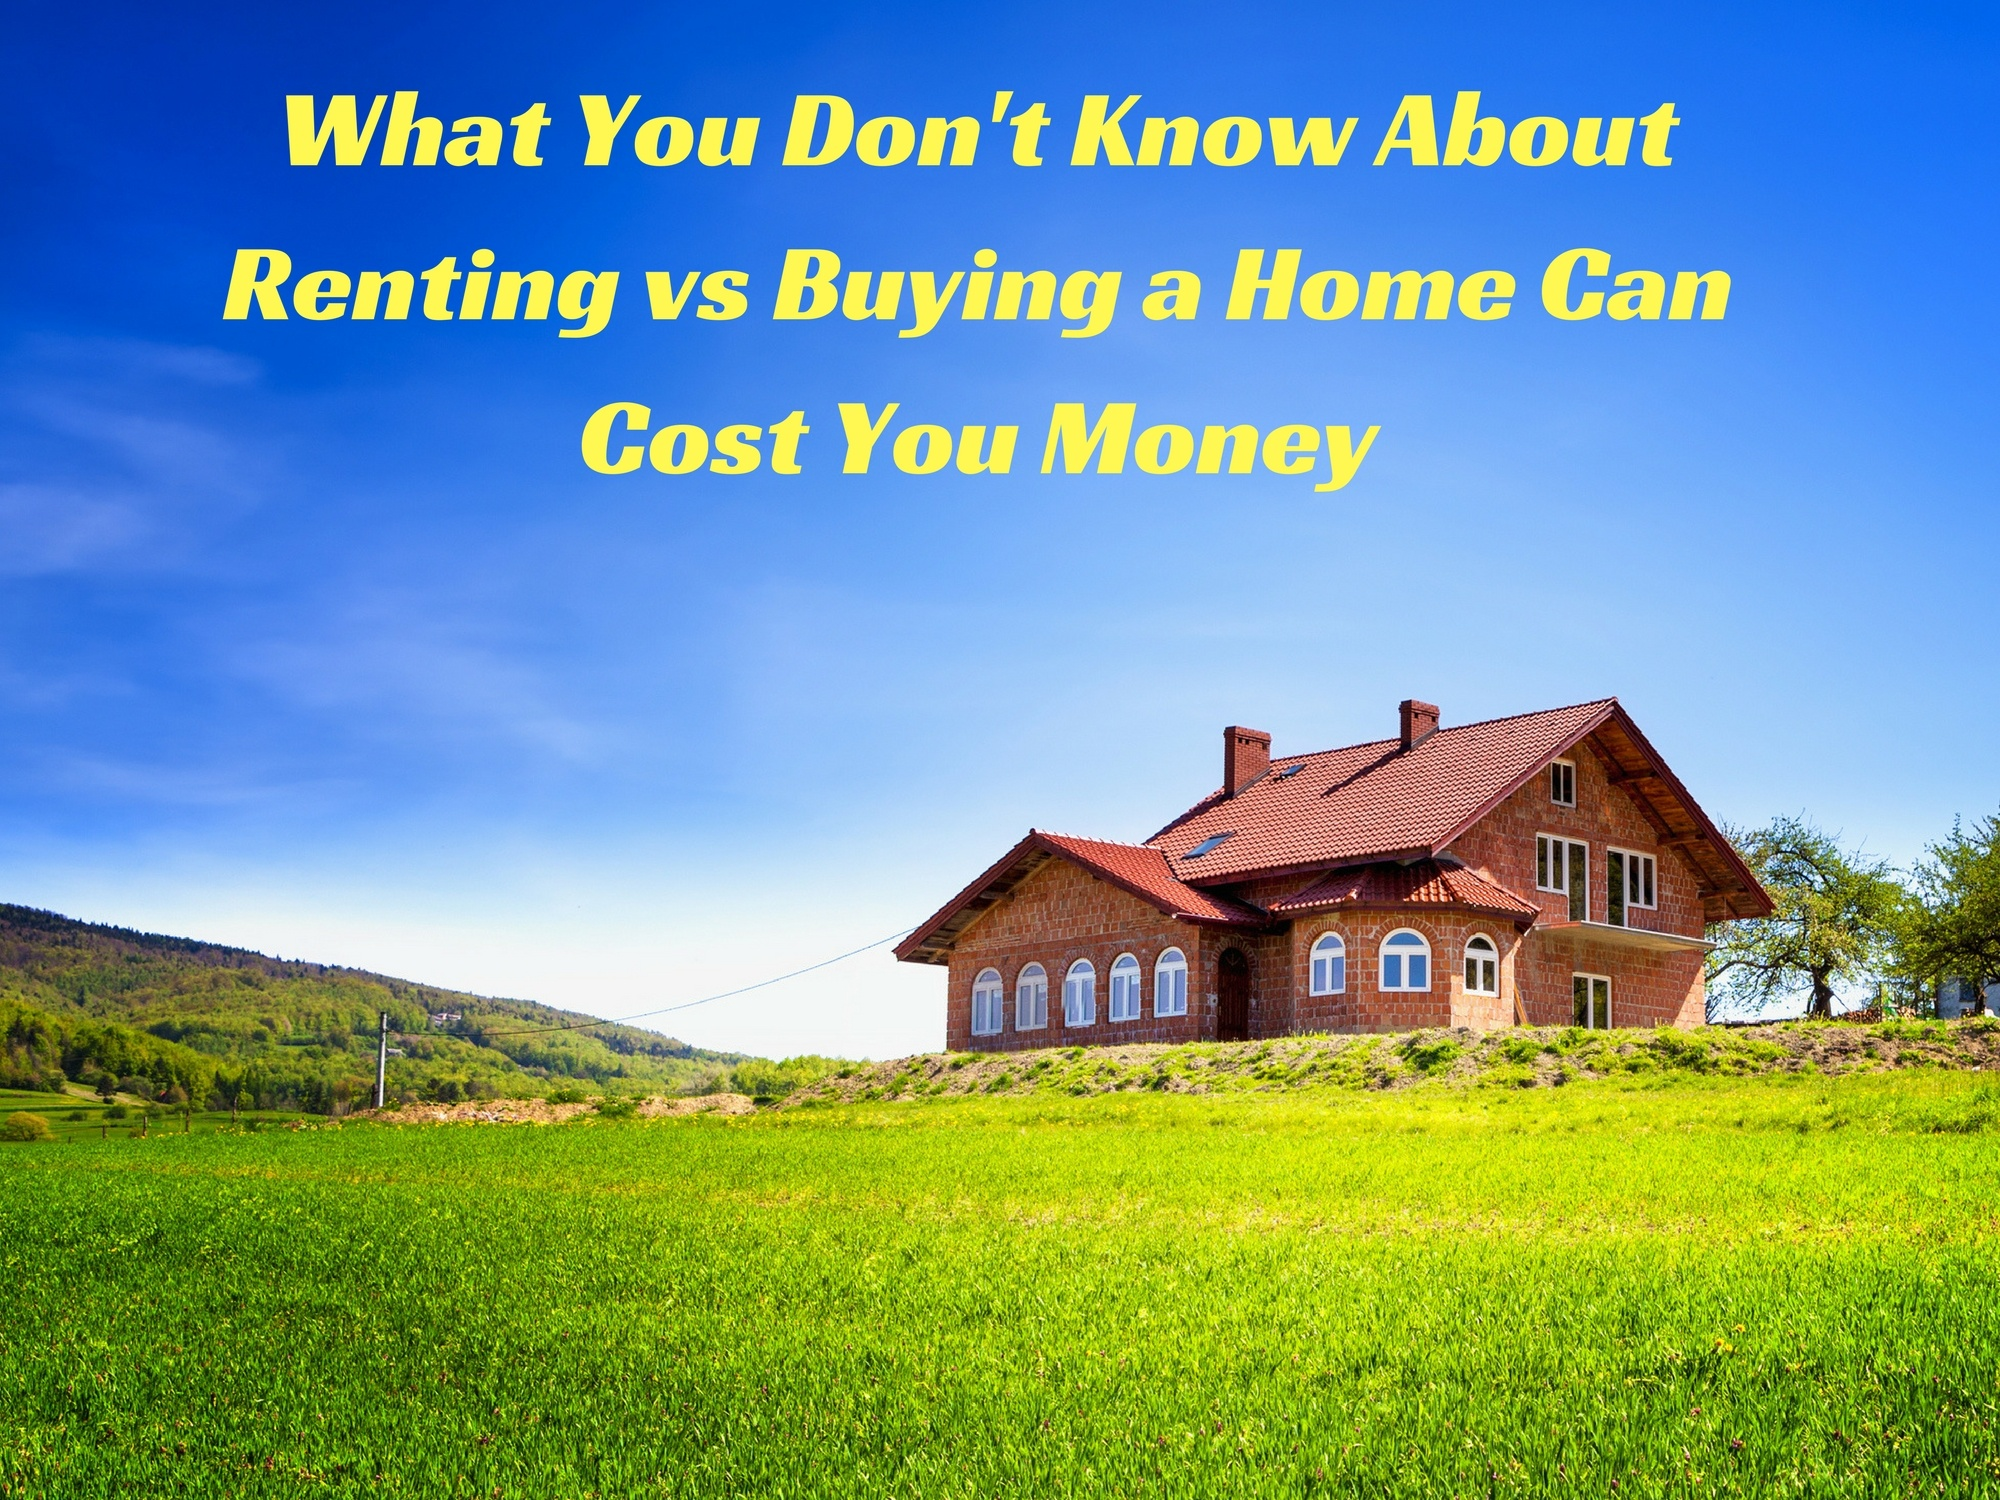 owing vs renting a house Appreciation in the value of the house transactional costs when buying  buying vs renting a home diffencom diffen llc, nd web 7 sep 2018 .